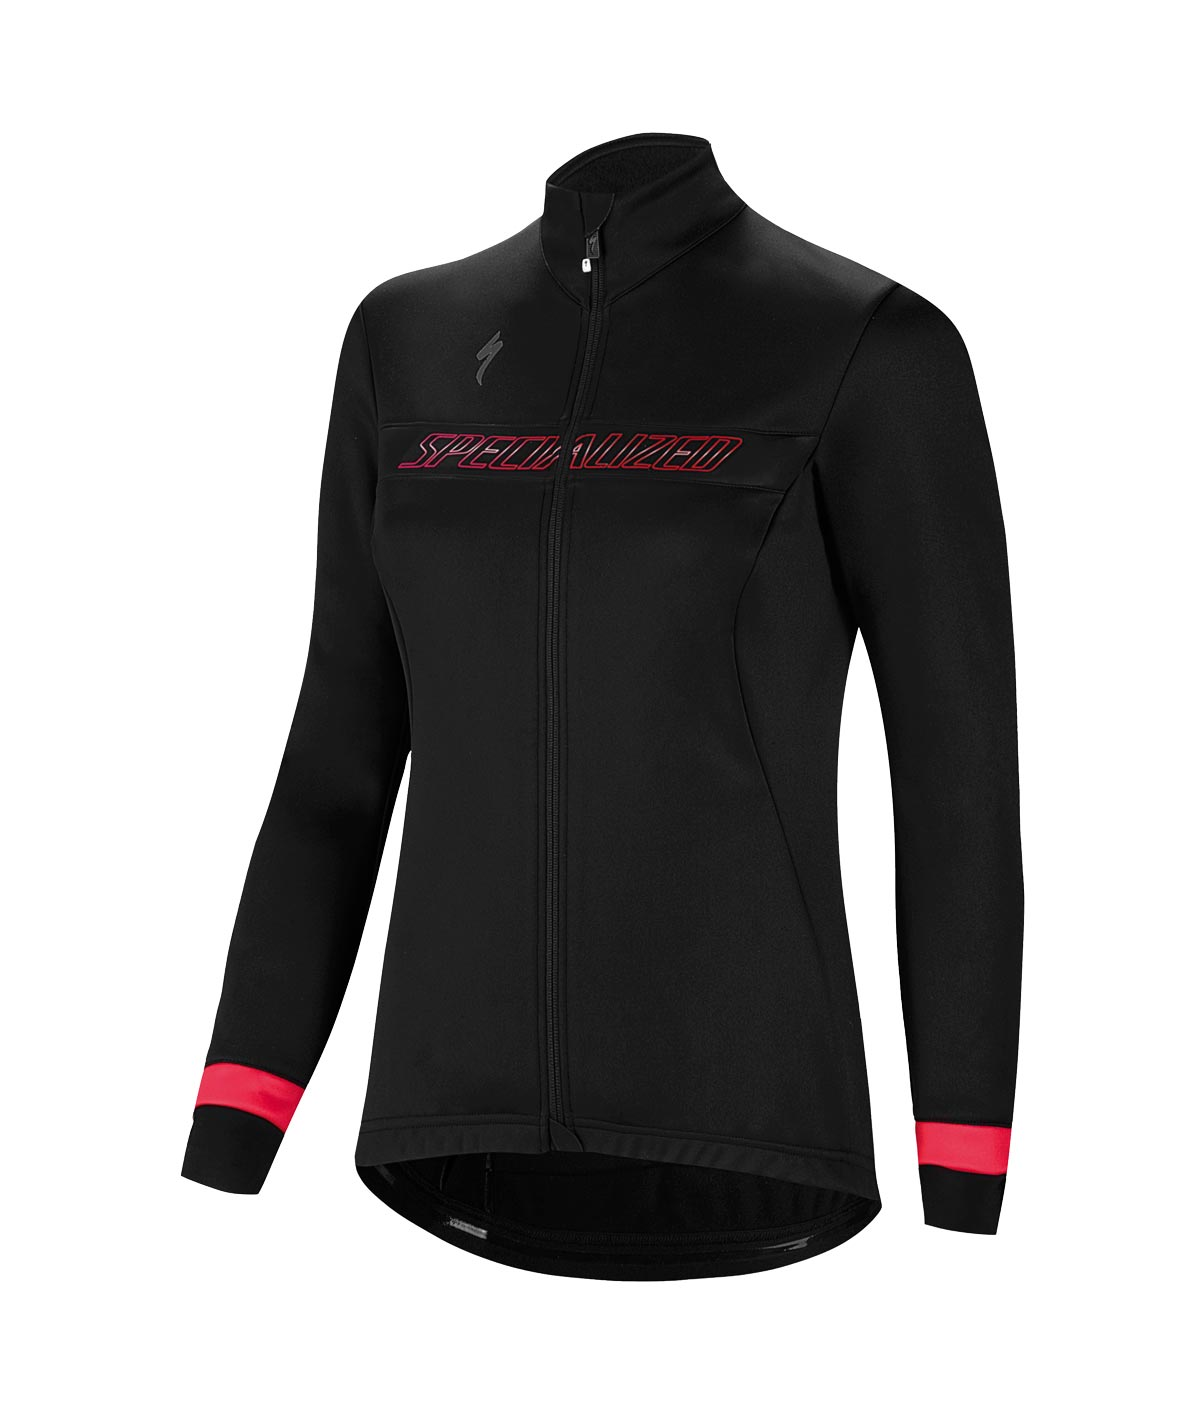 dámská bunda Specialized Element Rbx Sport Logo 2018/2019 black/pink